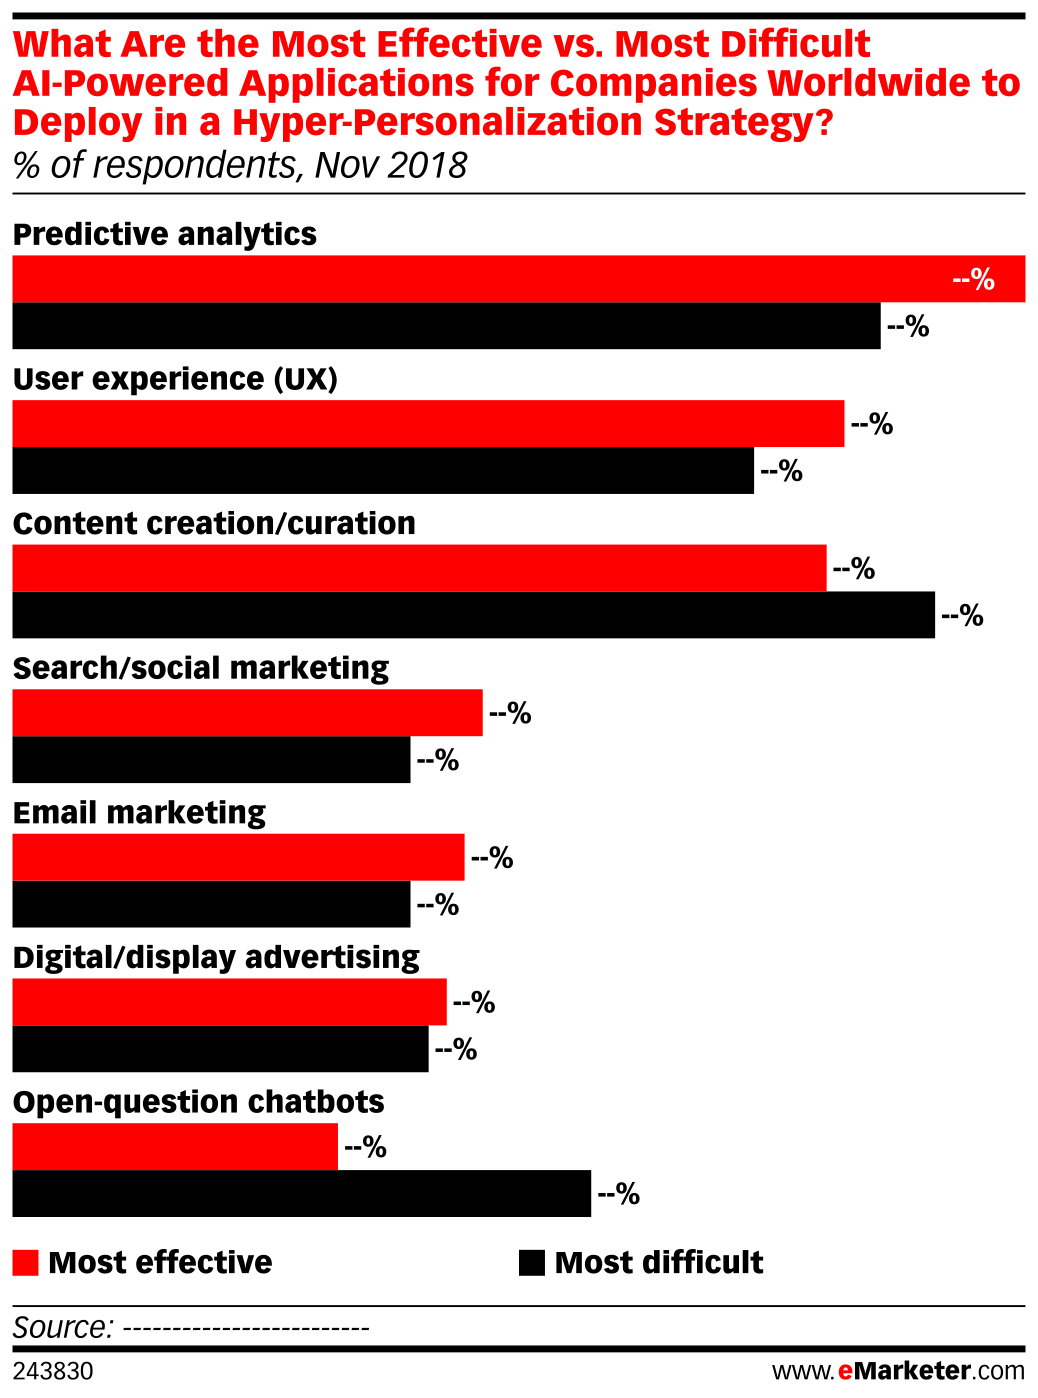 What Are the Most Effective vs. Most Difficult AI-Powered Applications for Companies Worldwide to Deploy in a Hyper-Personalization Strategy? (% of respondents, Nov 2018)